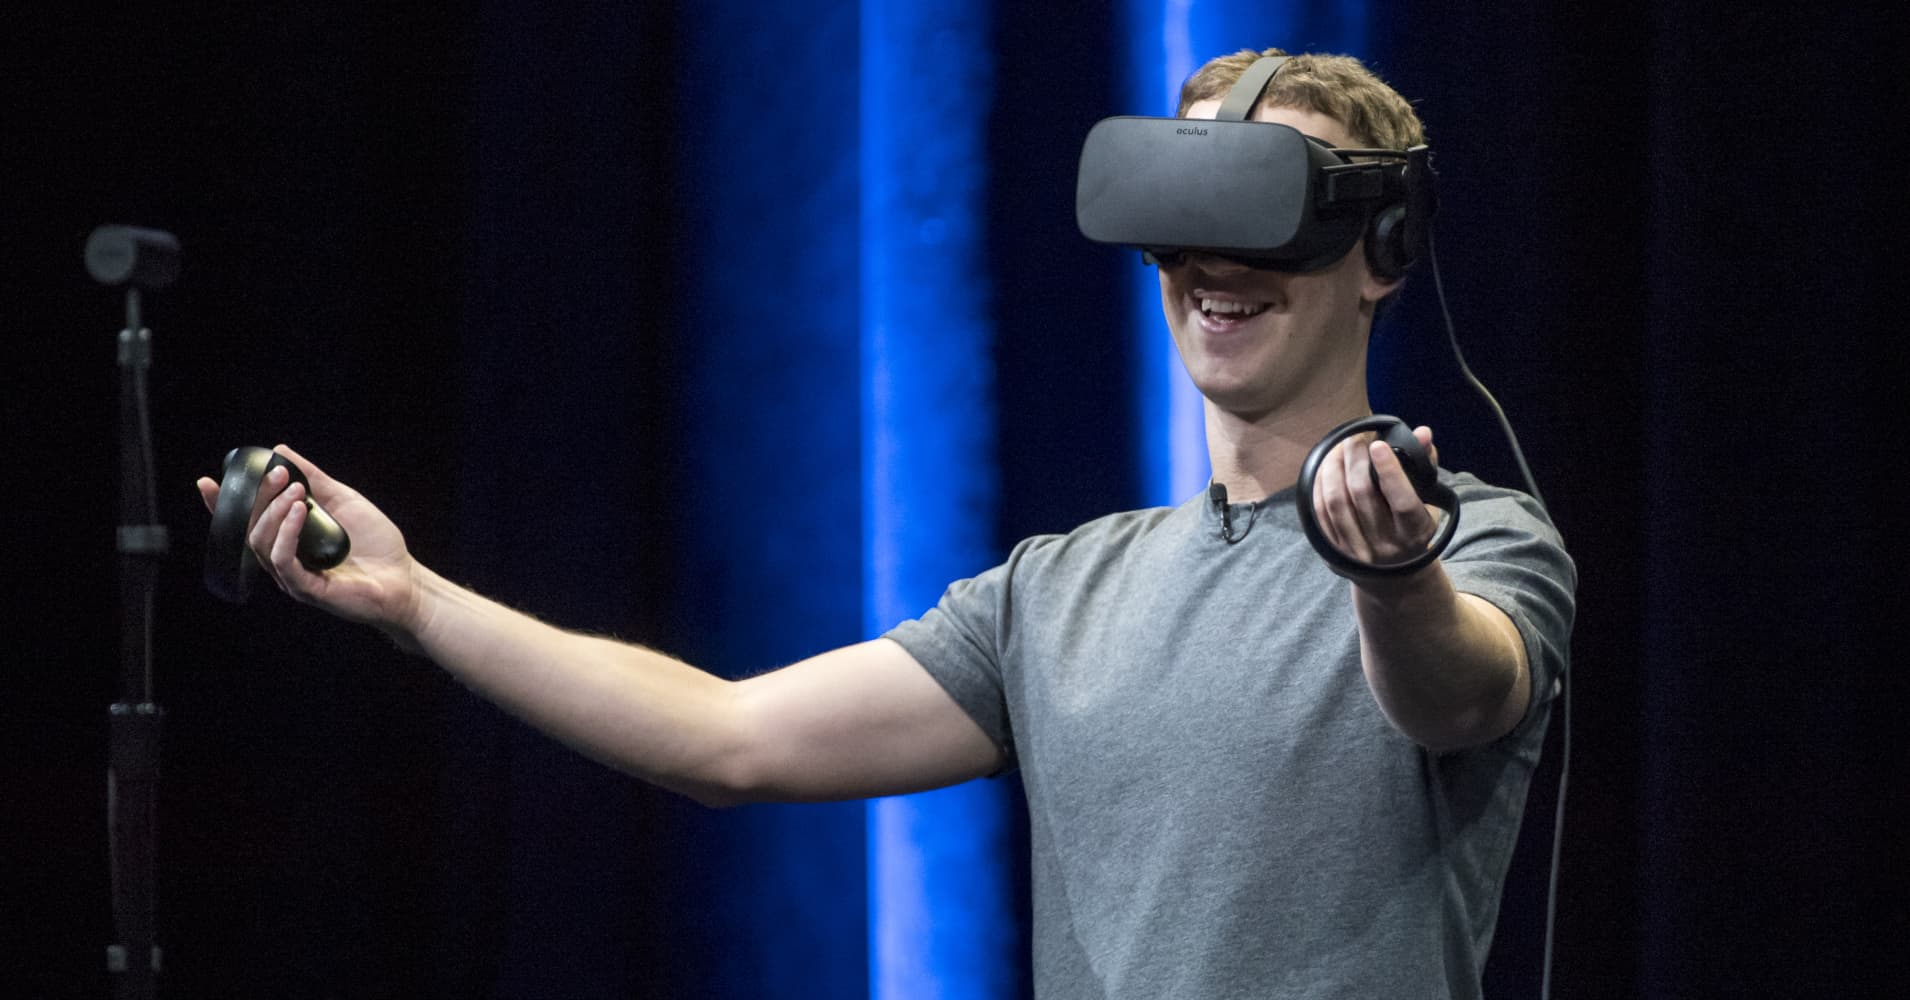 Facebook's $2 billion bet on virtual reality looks like one of Mark Zuckerberg's rare mistakes